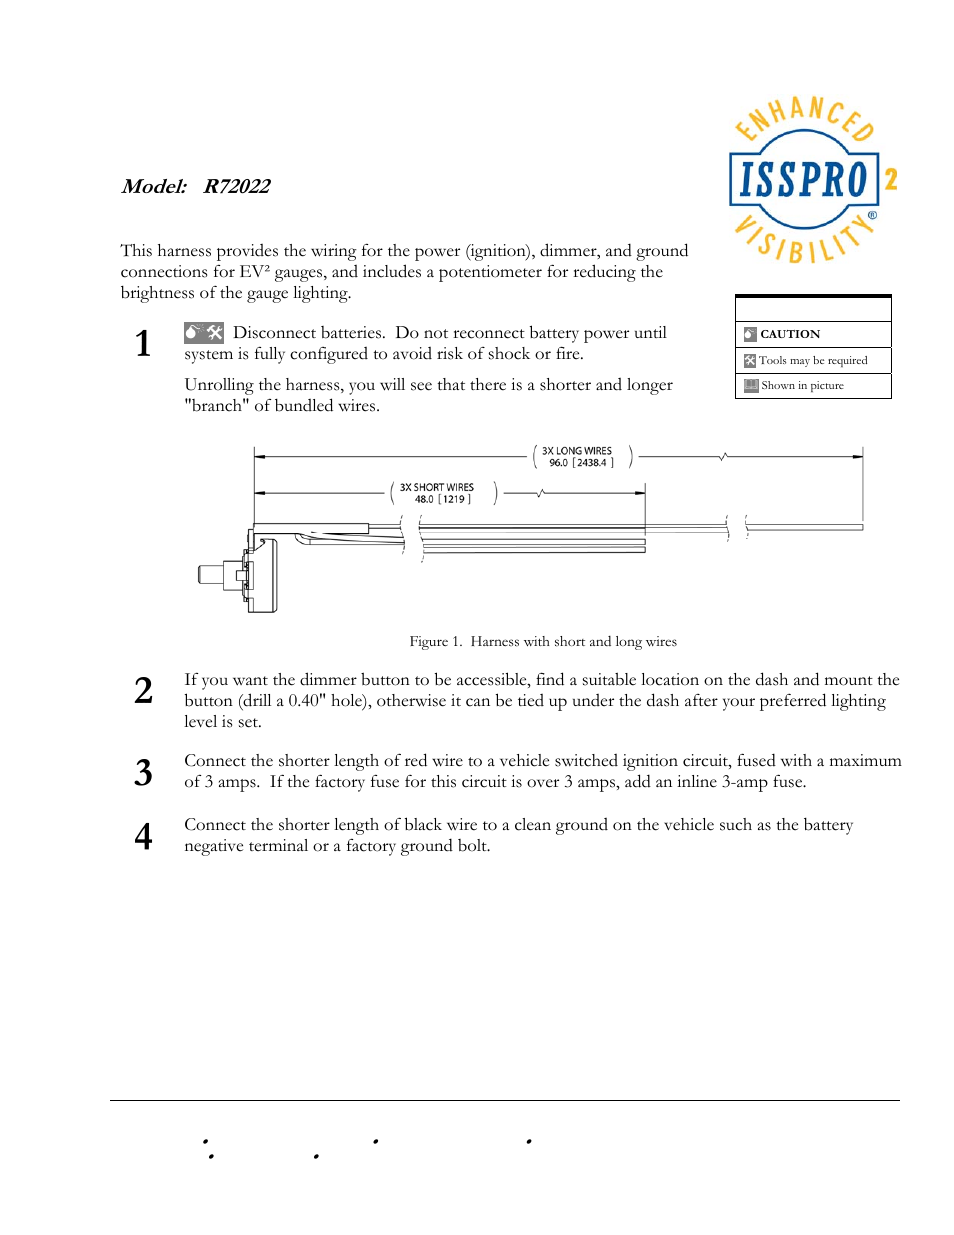 ISSPRO R72022 User Manual | 2 pages on